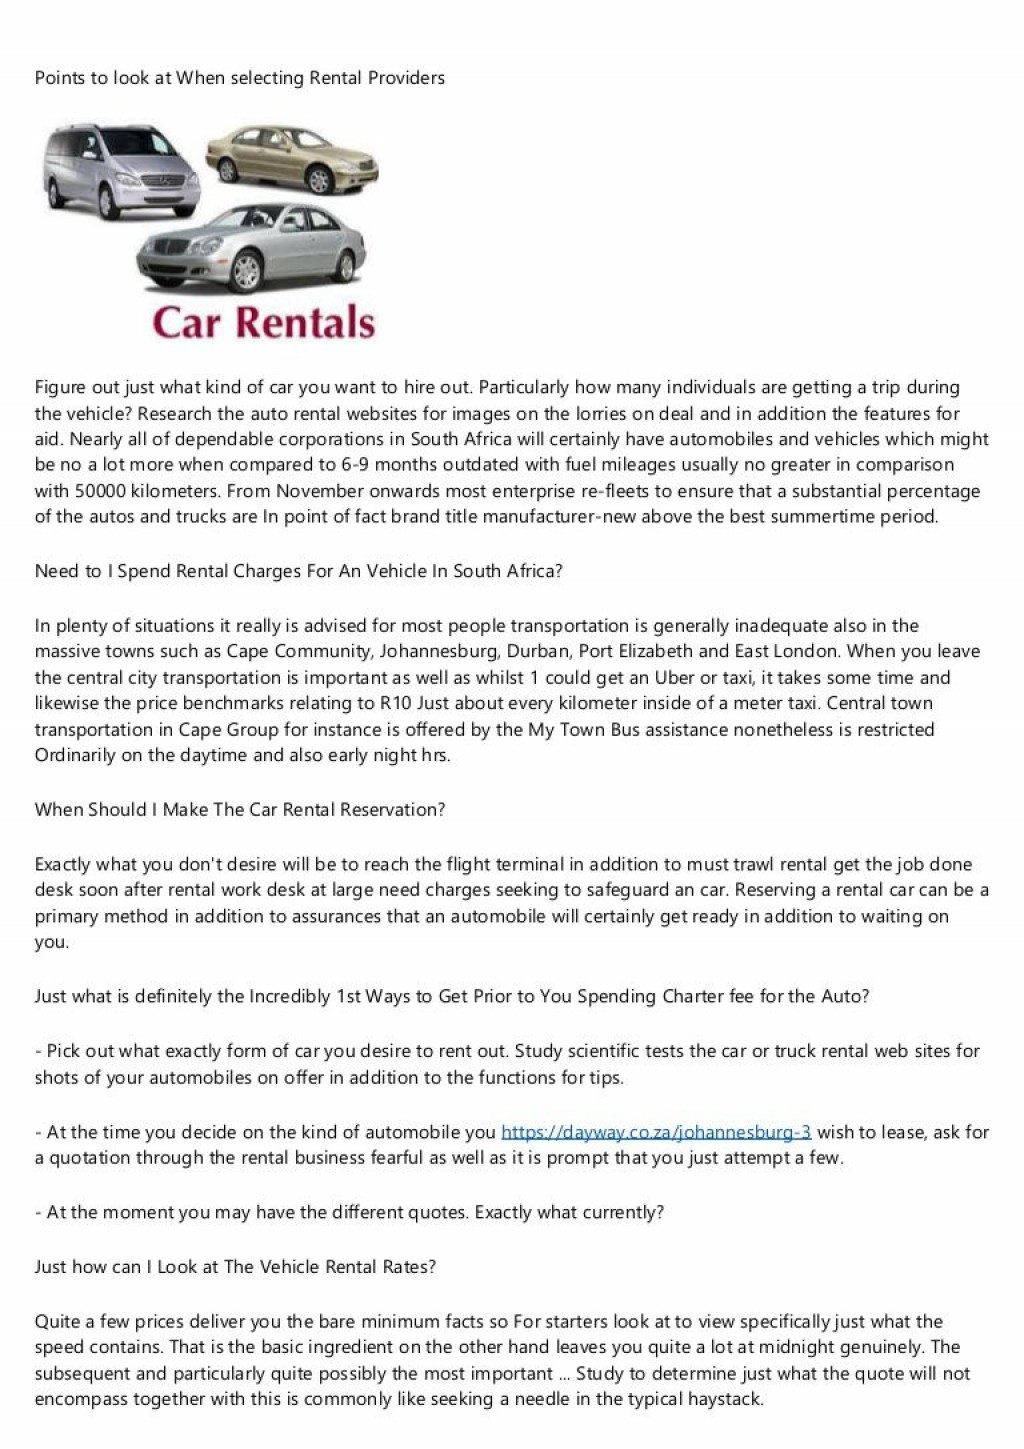 002 Fascinating Car Rental Agreement Template South Africa Example  Vehicle ContractLarge